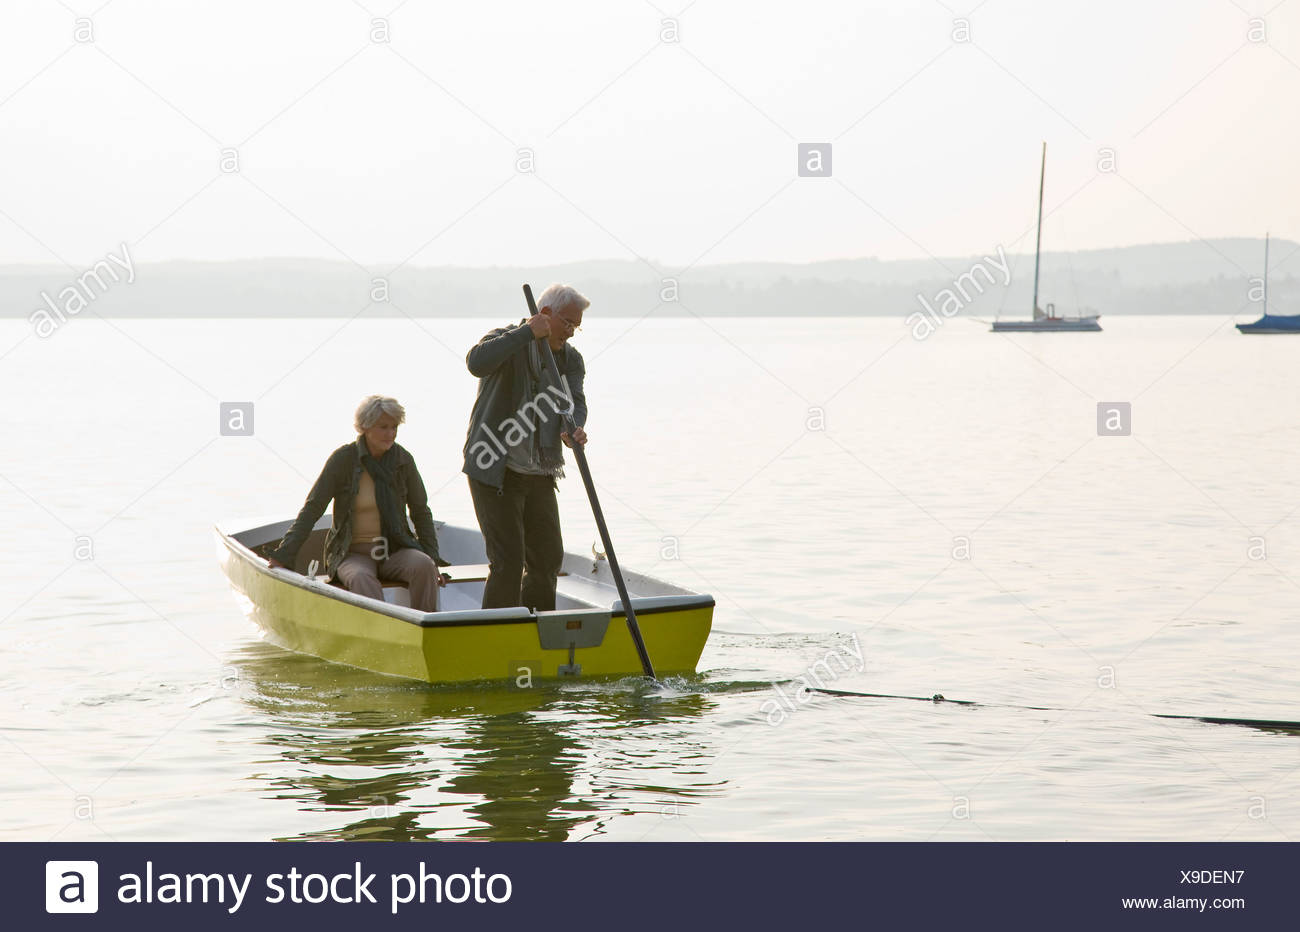 A senior couple in a rowing boat - Stock Image